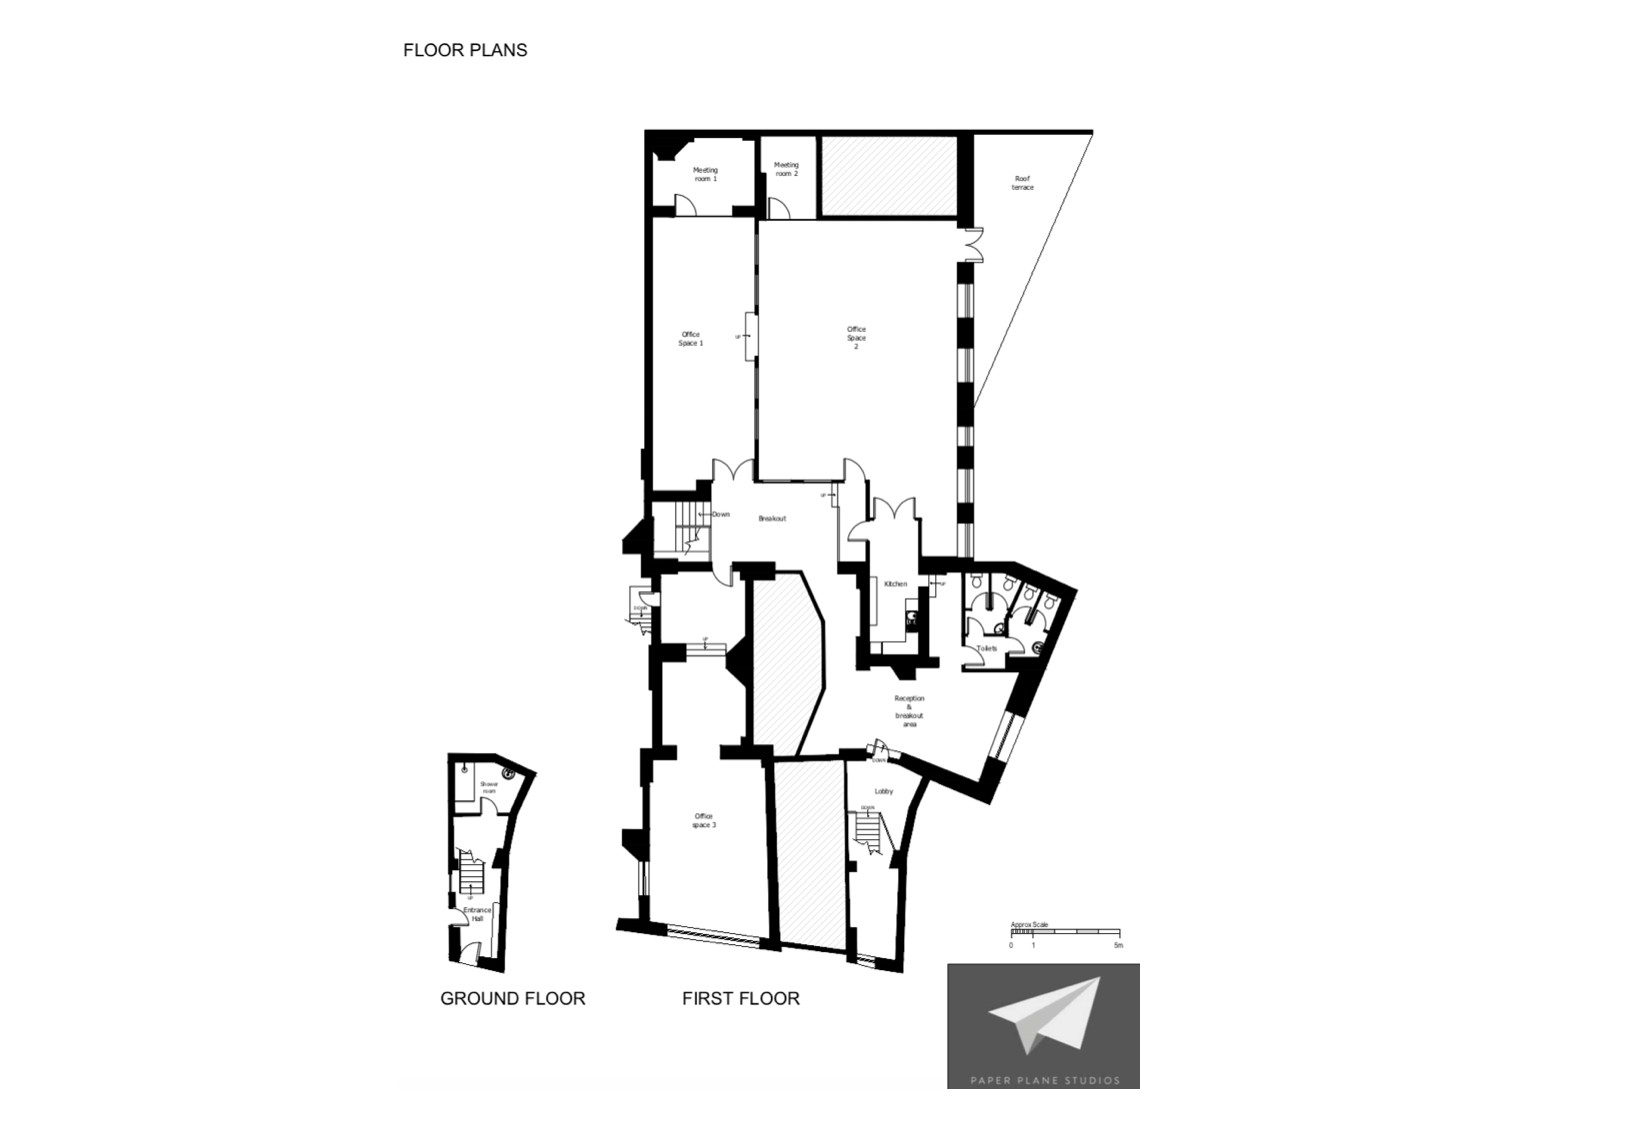 Floor plan for 70 person private office